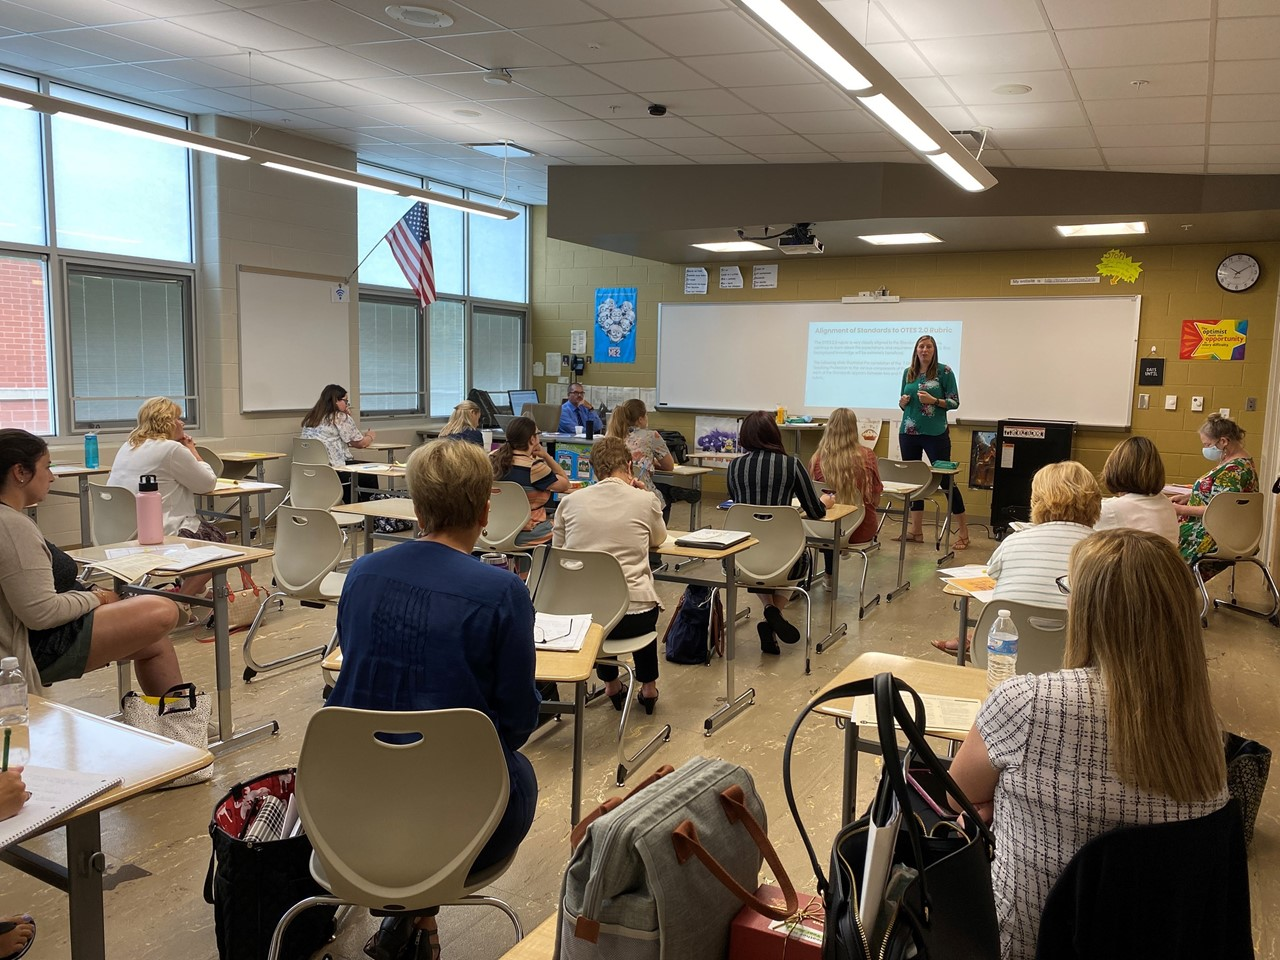 TCESC C&I Specialists Jenny Pancake, standing at front, and Bill Bosheff, seated at front desk, facilitate a professional learning opportunity at Convocation 2021.